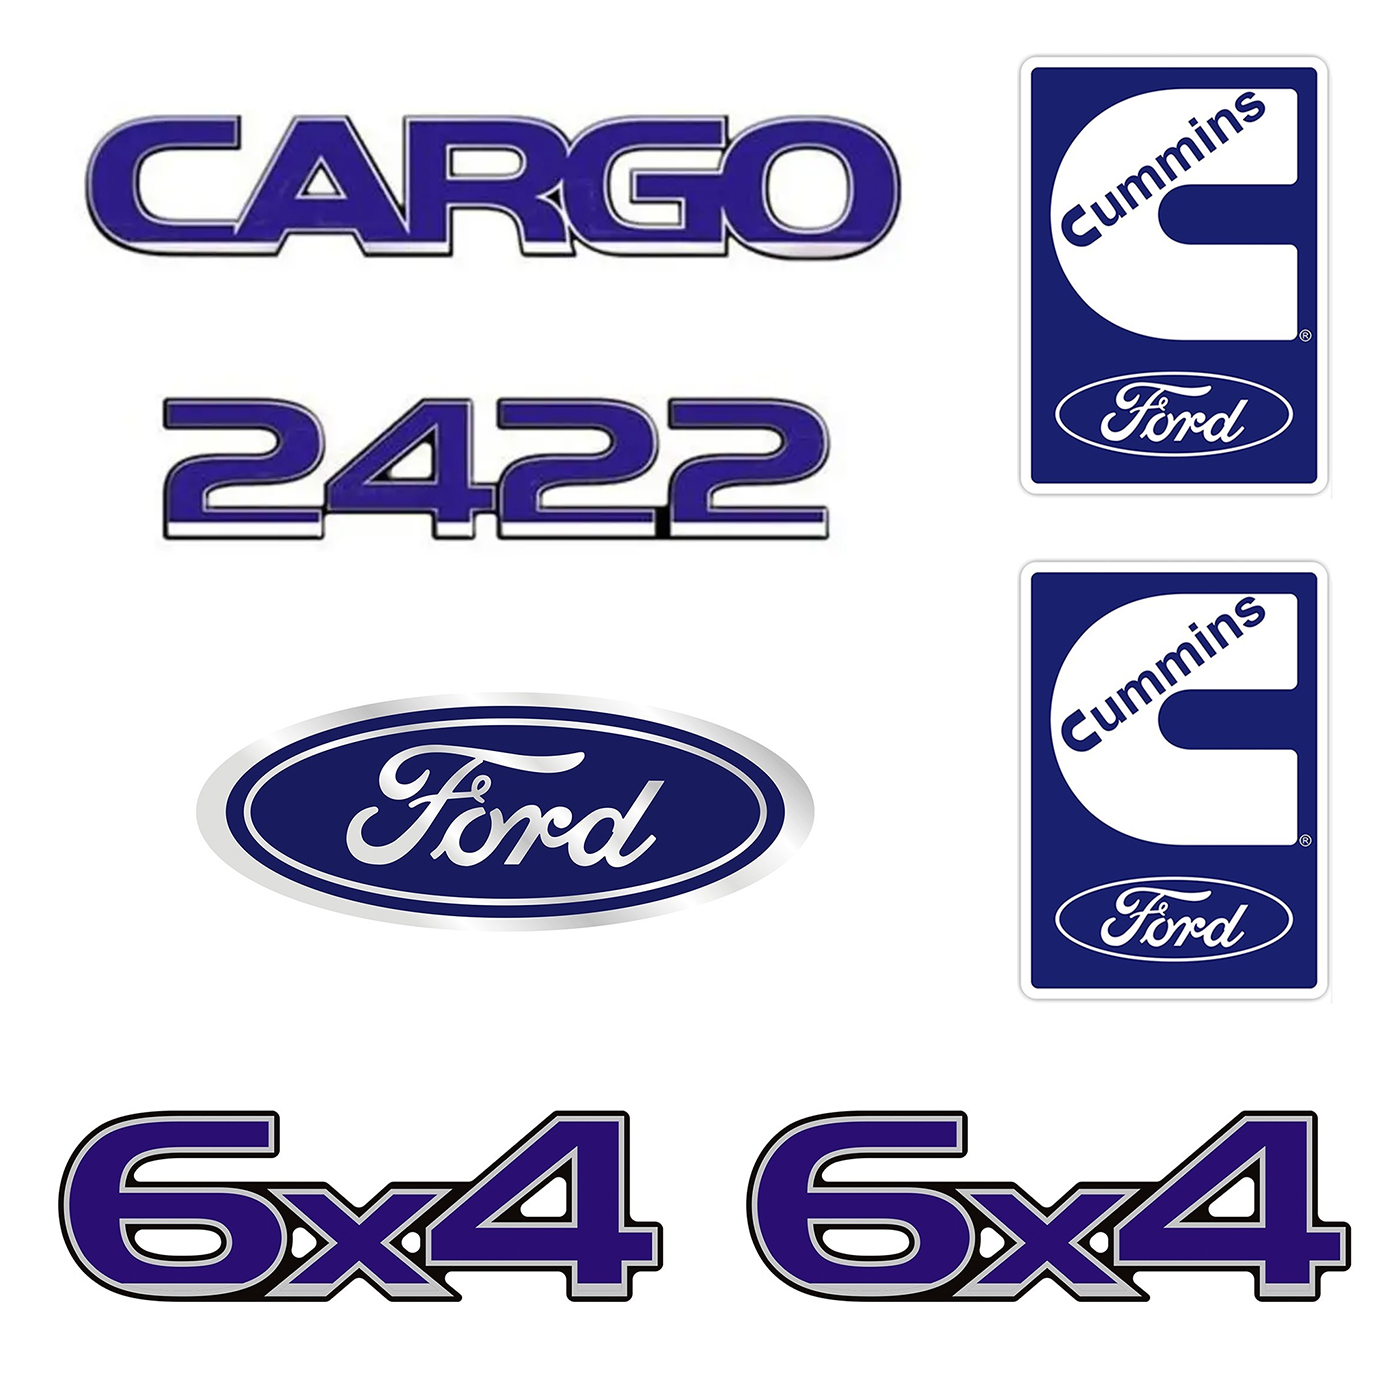 Emblema Ford Cargo 2422 6X4 Cummins - Kit